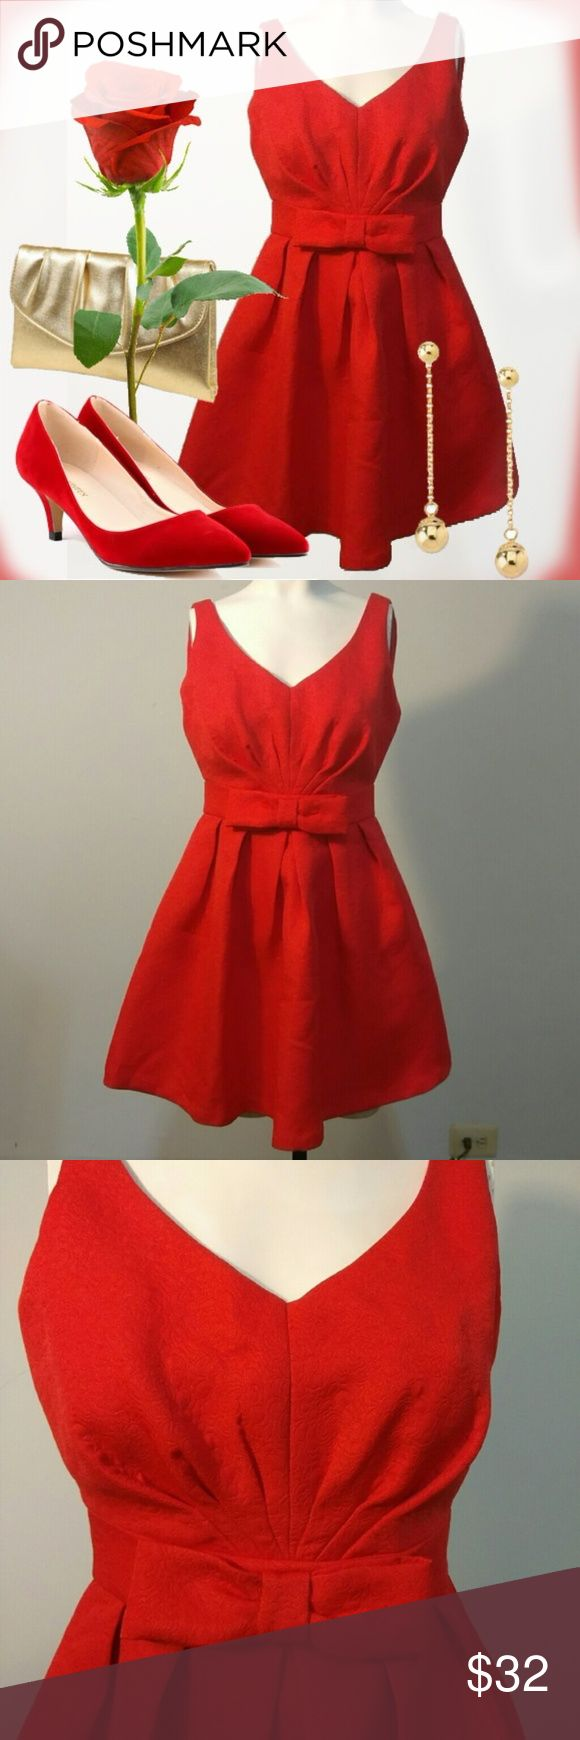 """Petite Collection Embossed Rose Texture Red Dress Petite Collection Embossed Rose Texture Red Dress Size 4 NWT Bust: 36""""/ Waist: 24.5""""/ Length: 31.5."""" Red dress size 4 mini with rose texture embossed fabric detail. Please, see photos. Accessories not included*  PRICE FIRM = Not accepting offers.  Thanks ;-) Petite Collection Dresses Mini"""